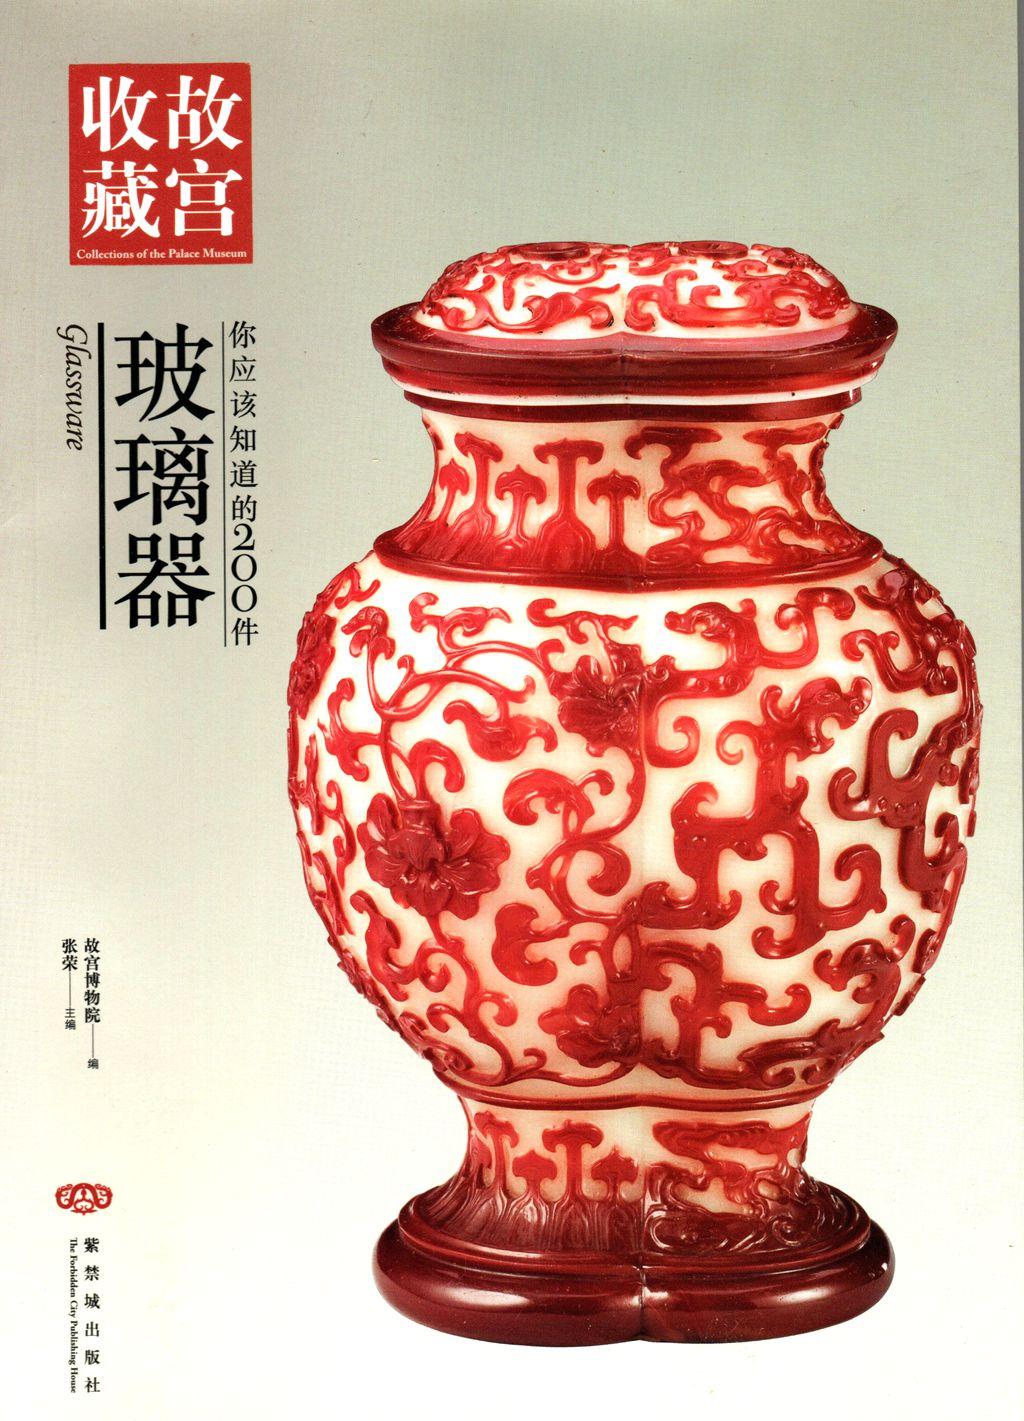 F8047, China Glassware---Collection of the Palace Museum (2008)